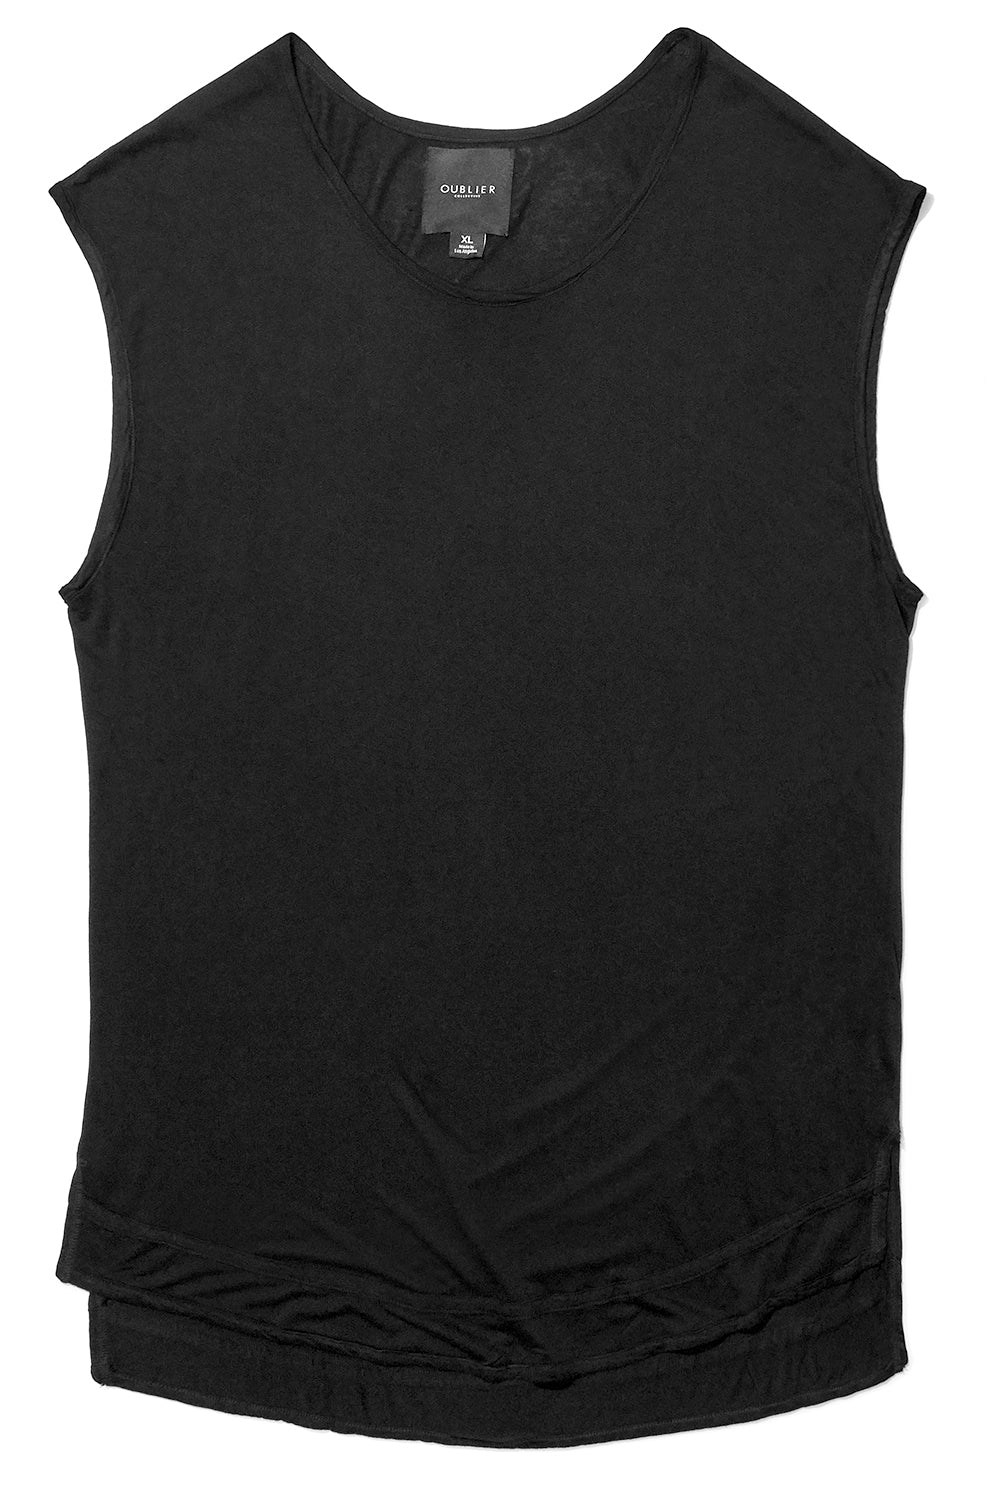 NOIR MUSCLE SHIRT